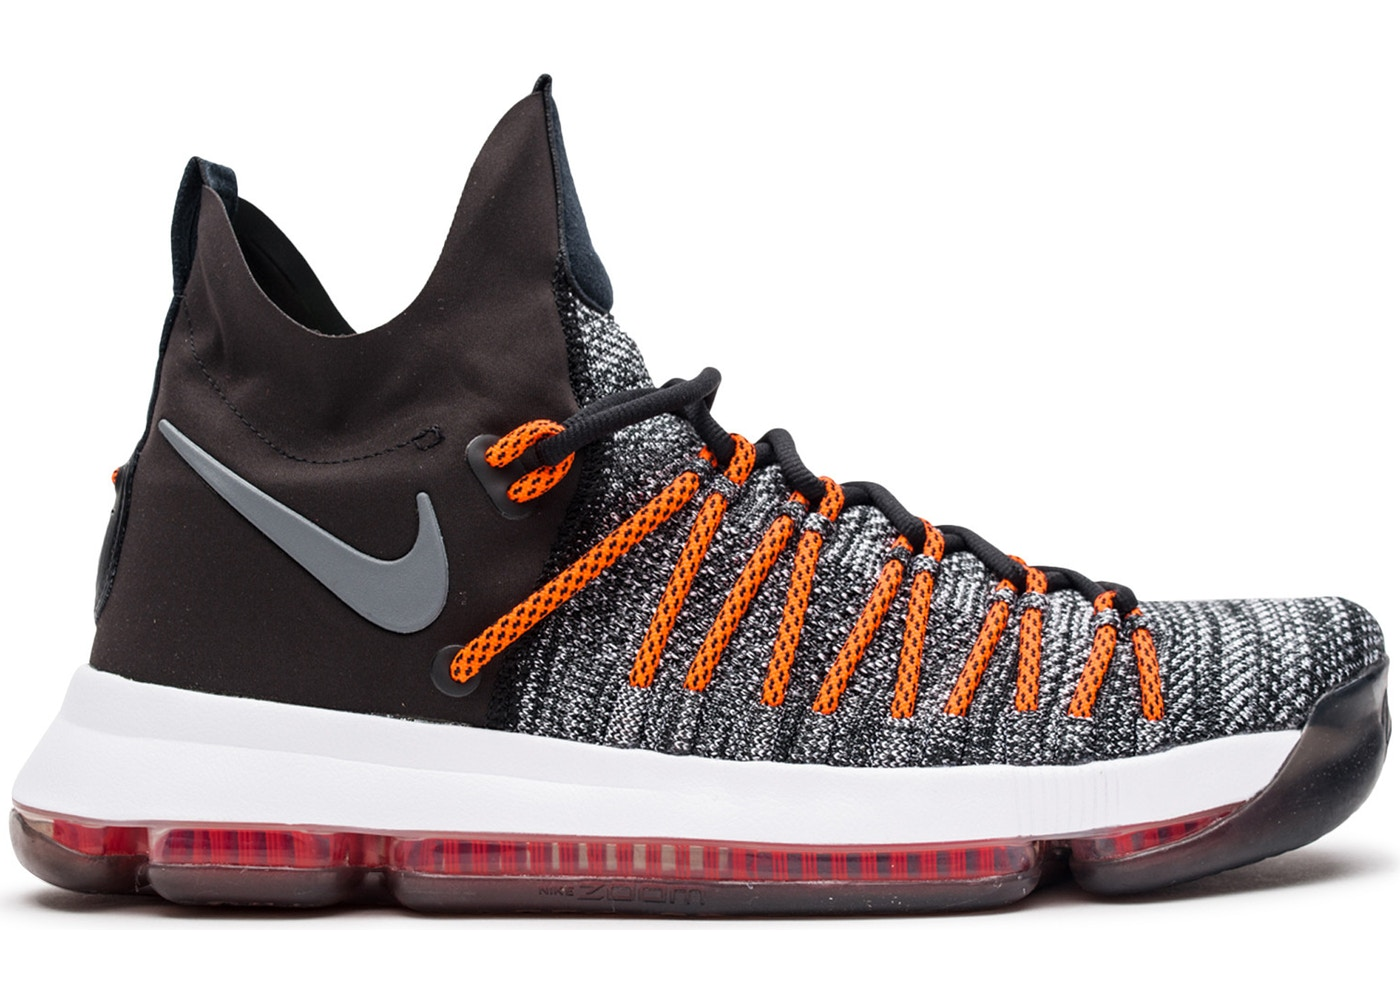 uk availability 1903a 01b2c KD 9 Elite Dark Grey Hyper Orange - 878637-010